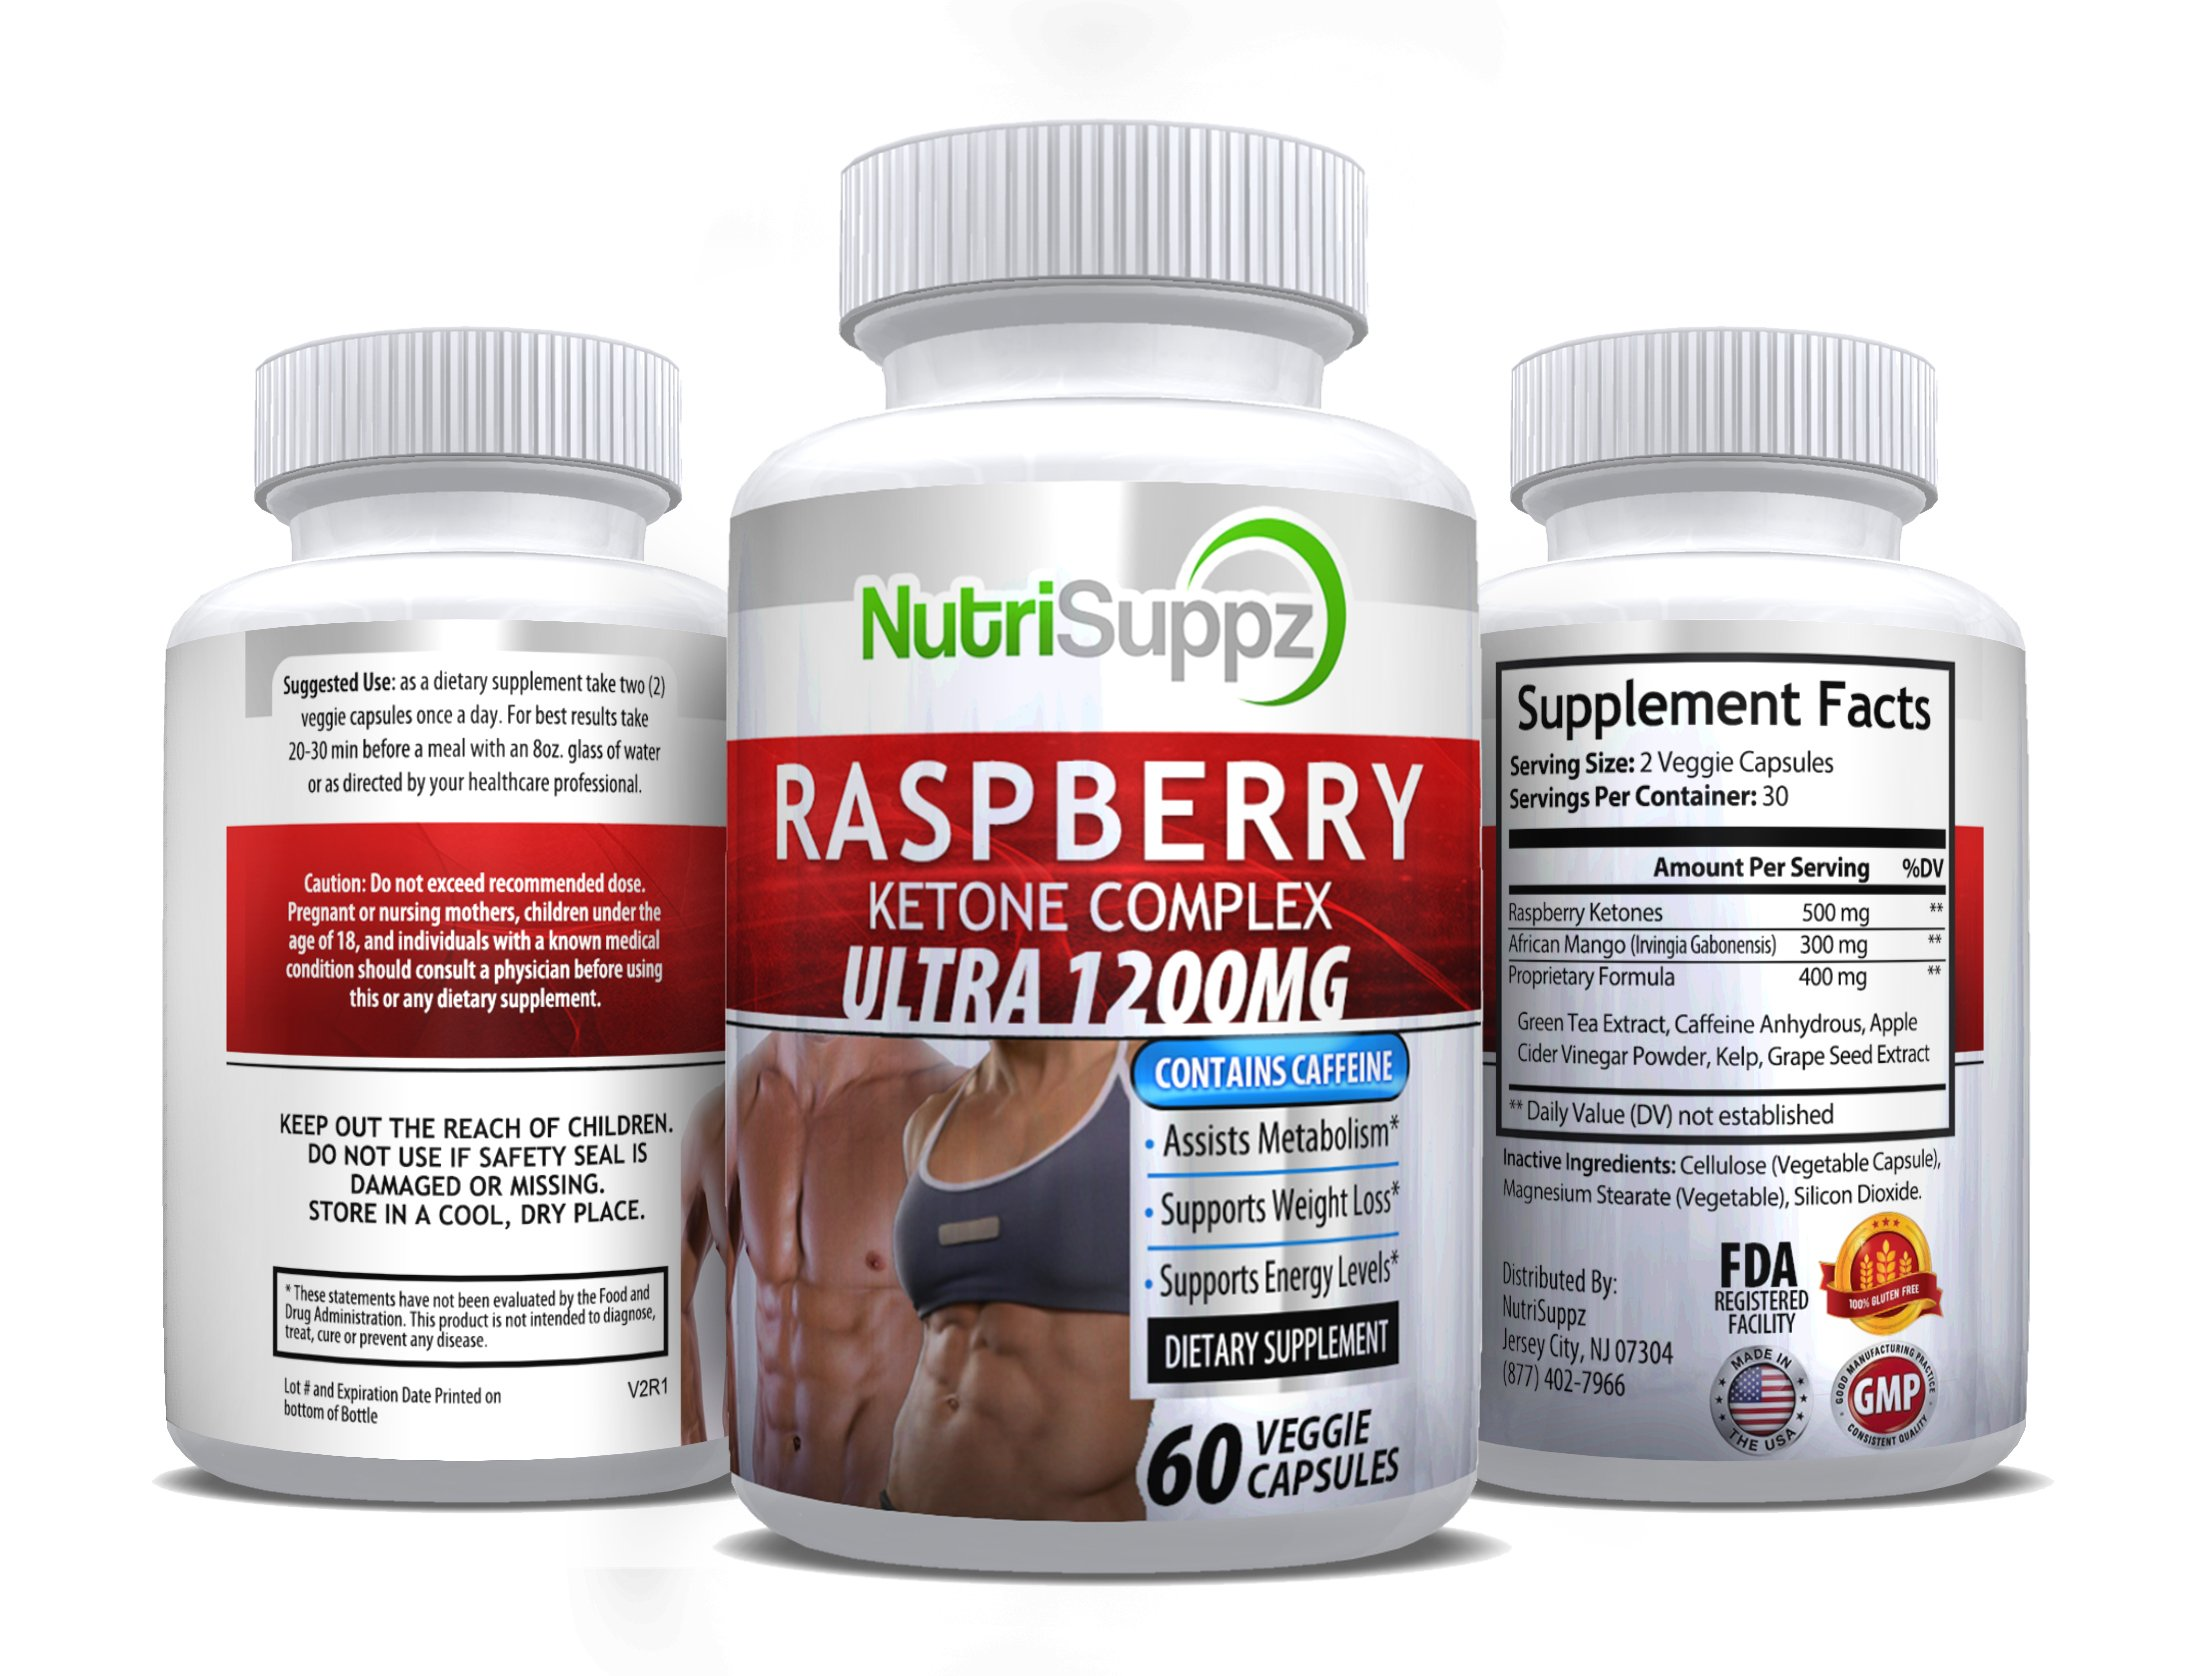 100% Pure Raspberry Ketone COMPLEX ULTRA 1200mg, Weight Loss Pills, Thermogenic Effect - Green Tea Extract, African Mango, Grape Seed Extract - 60 Veggie Capsules by NutriSuppz